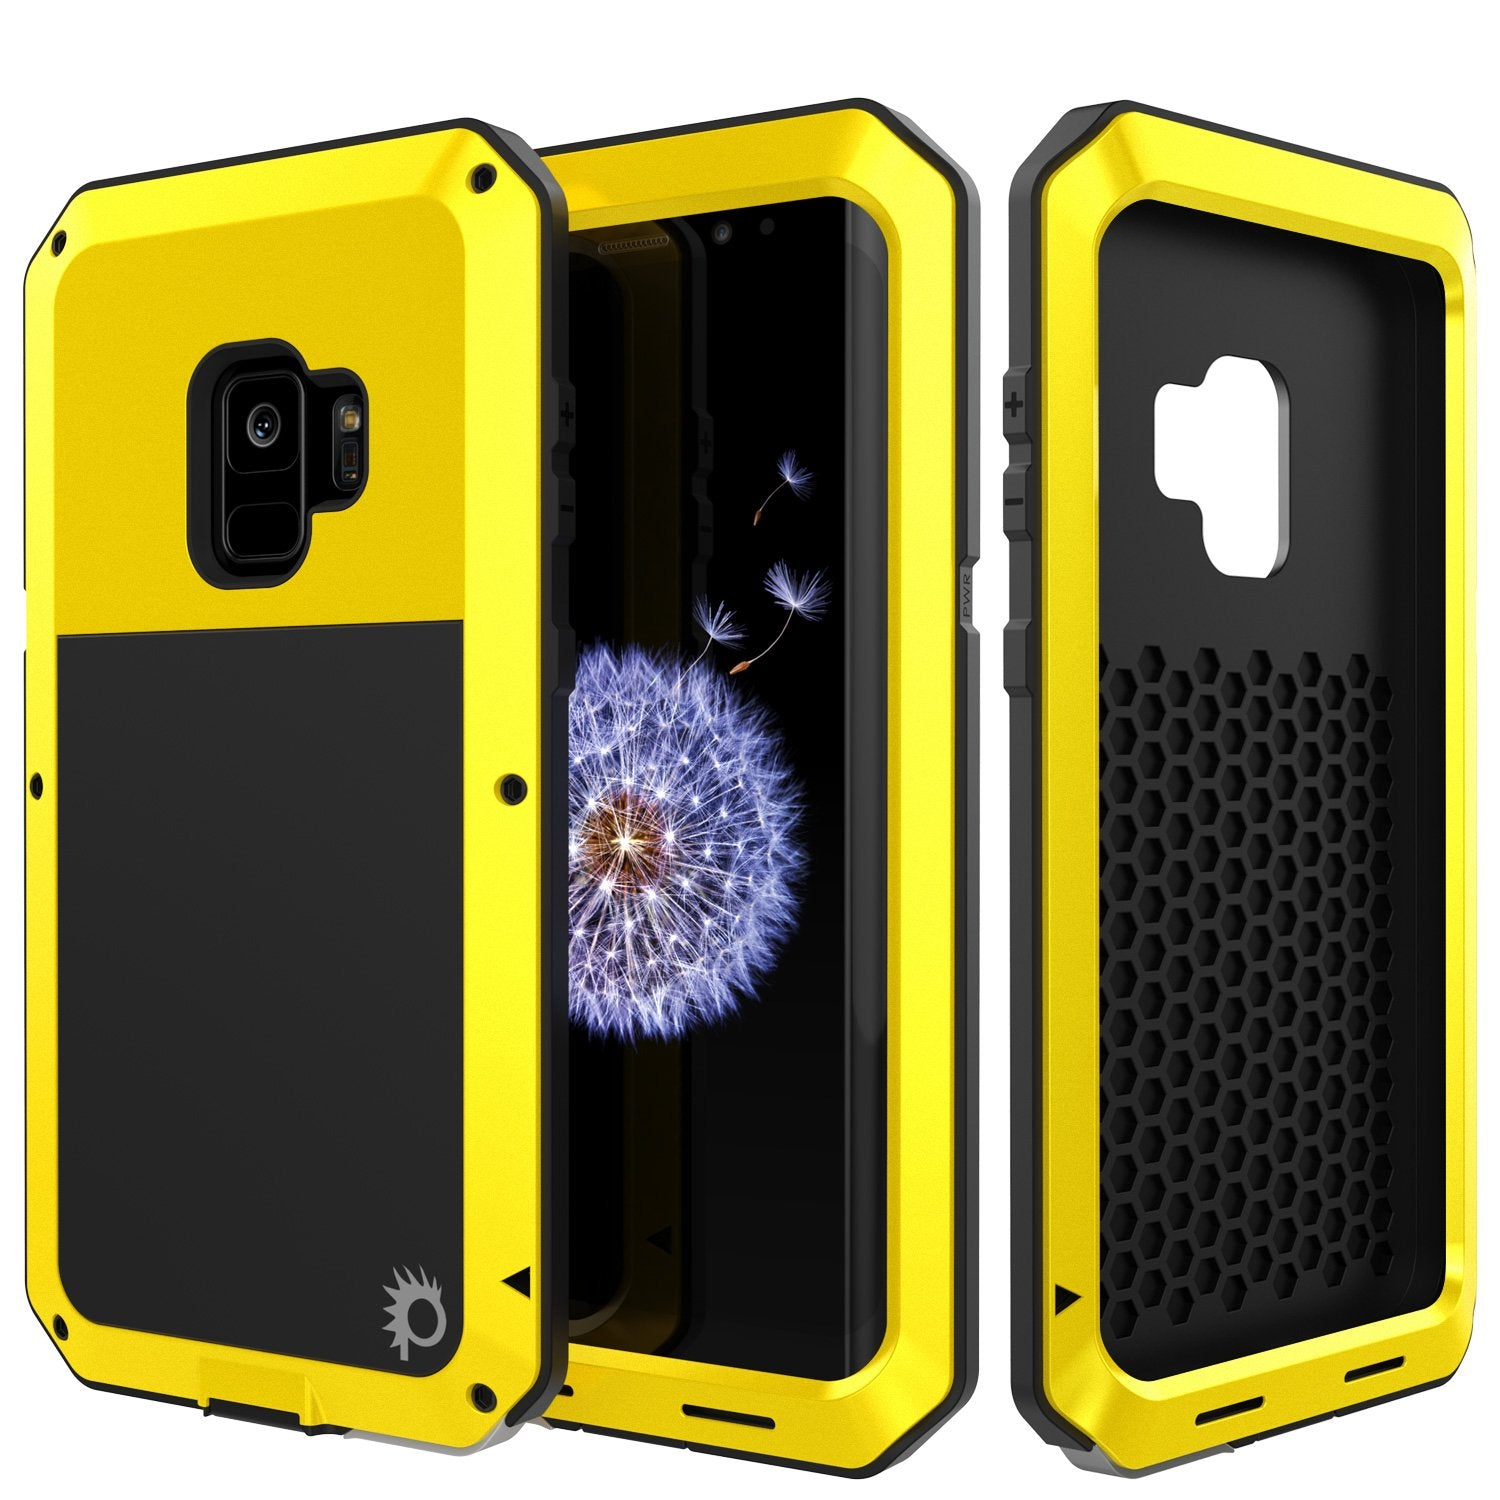 Galaxy S9 Metal Case, Heavy Duty Military Grade Rugged case [Neon]